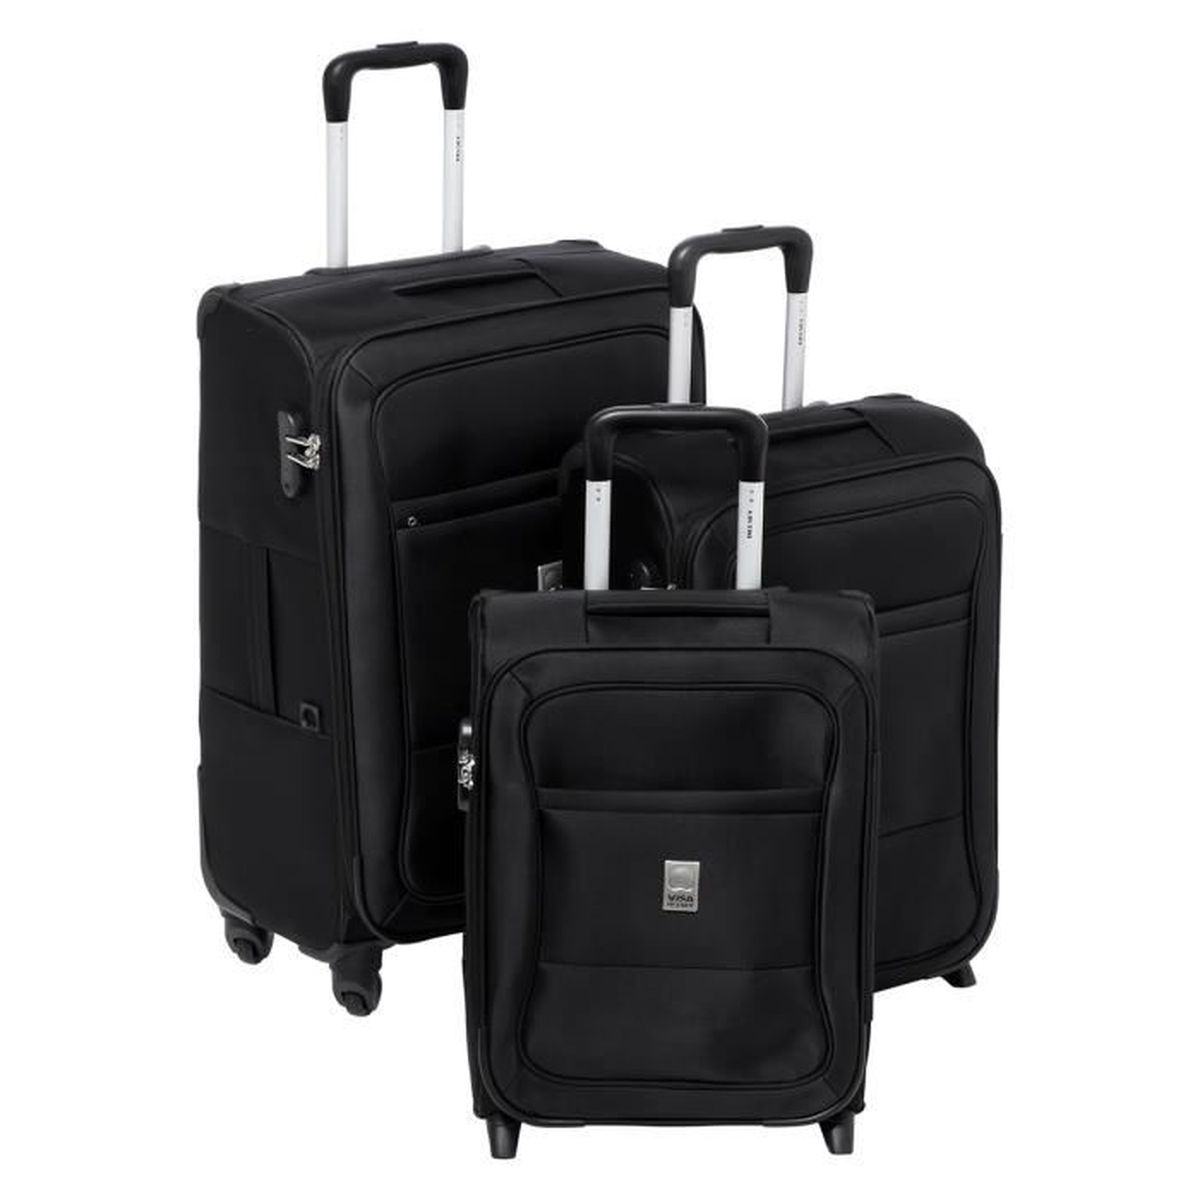 visa delsey set de 2 valises 2 roues 48 57 cm valise 4 roues 68cm souple neptune noir noir. Black Bedroom Furniture Sets. Home Design Ideas